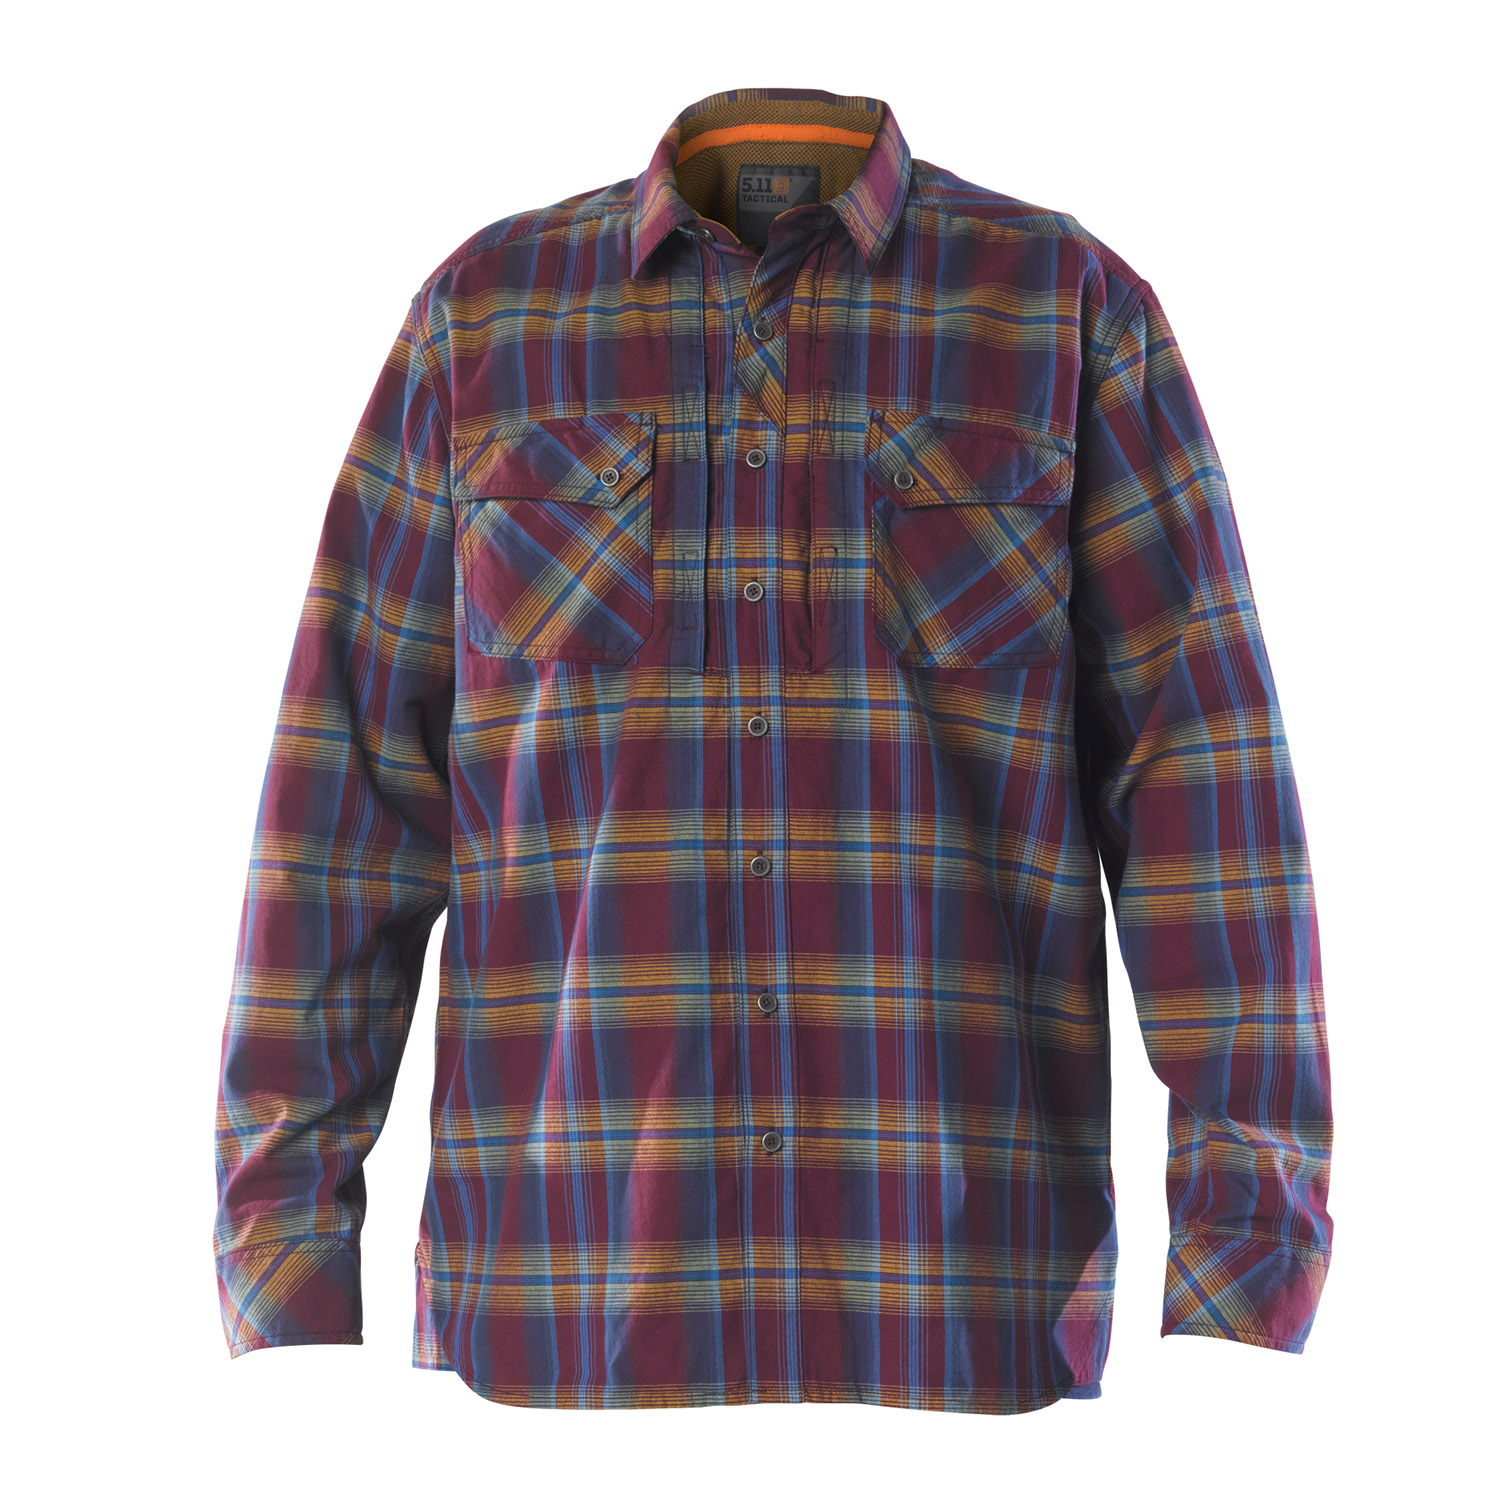 5.11 Tactical CCW Flannel Long Sleeve Shirt